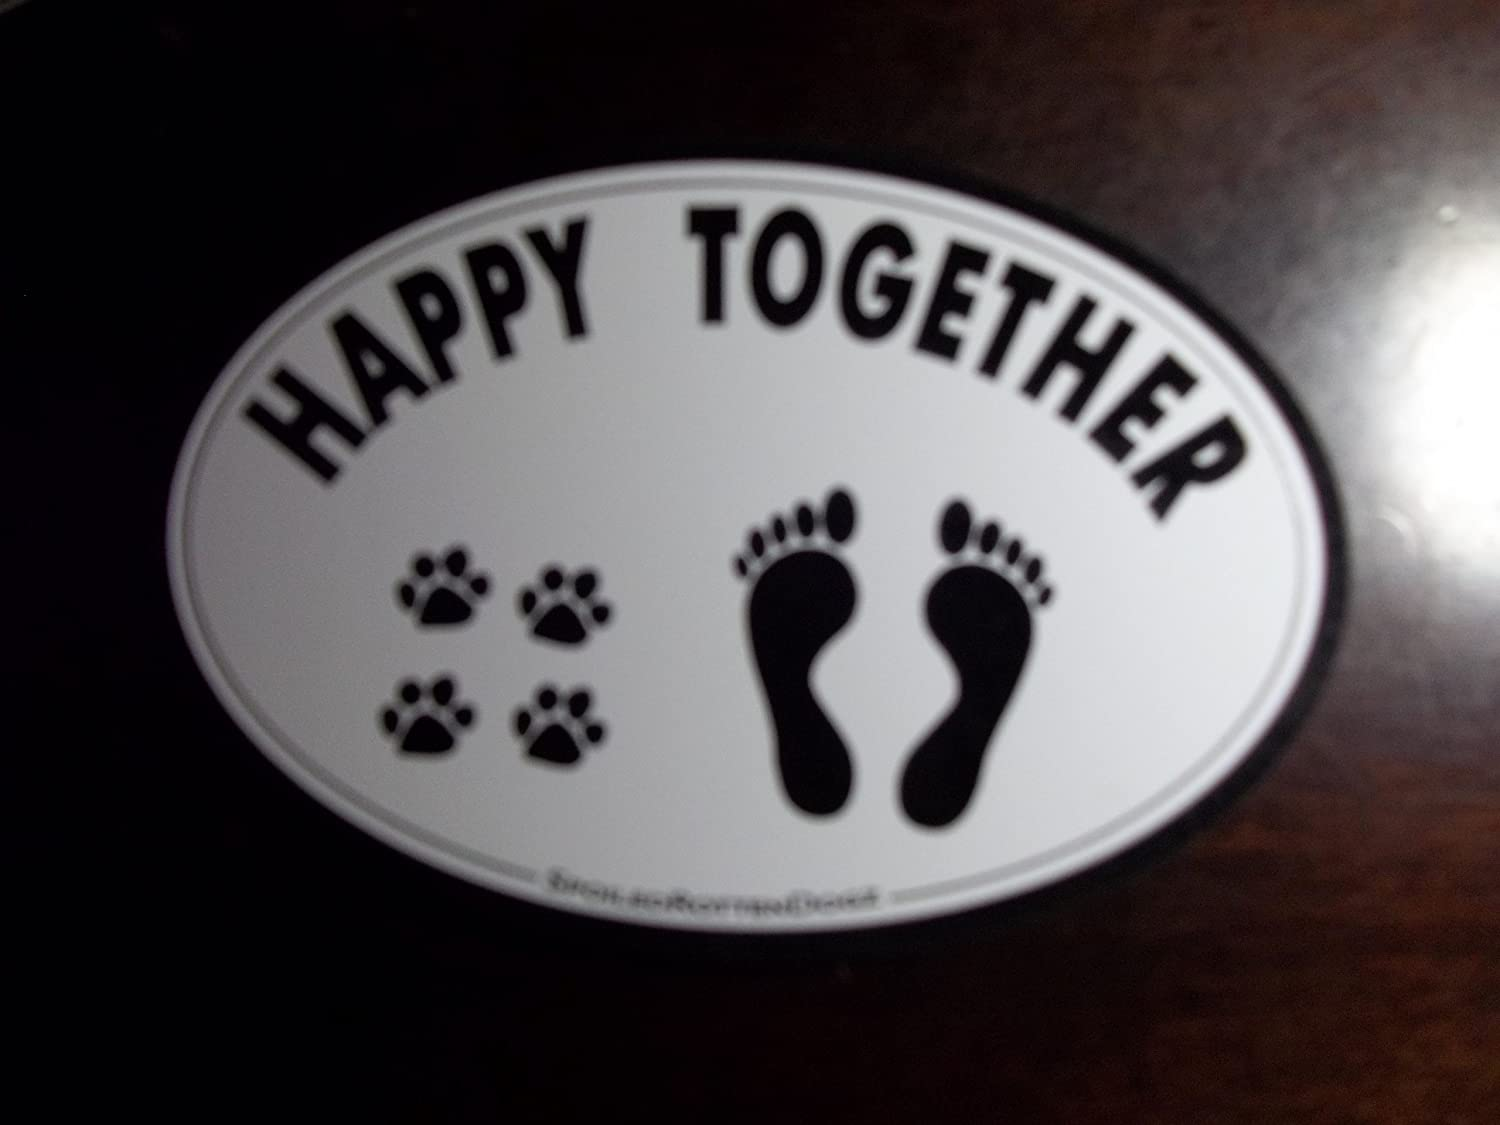 Pet Car Magnet - HAPPY TOGETHER Spoiled Rotten Dogz